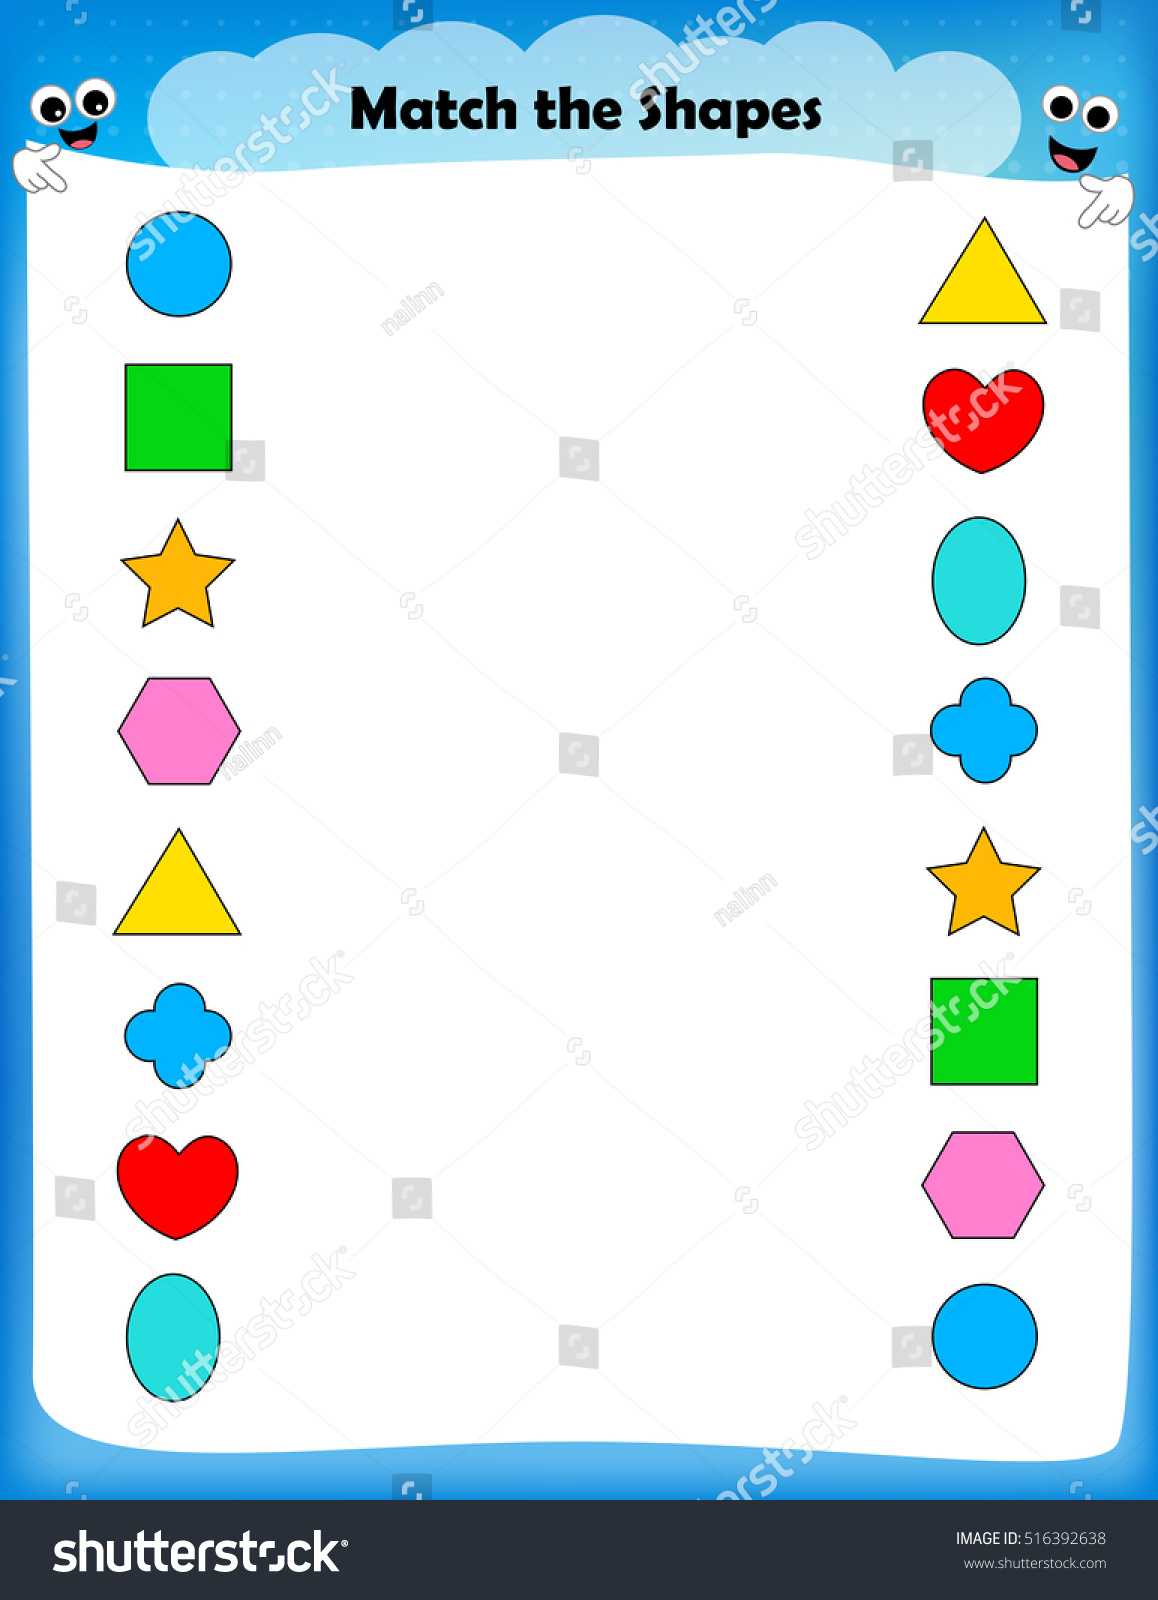 Worksheet Match Similar Shapes Worksheet Preschool Stock